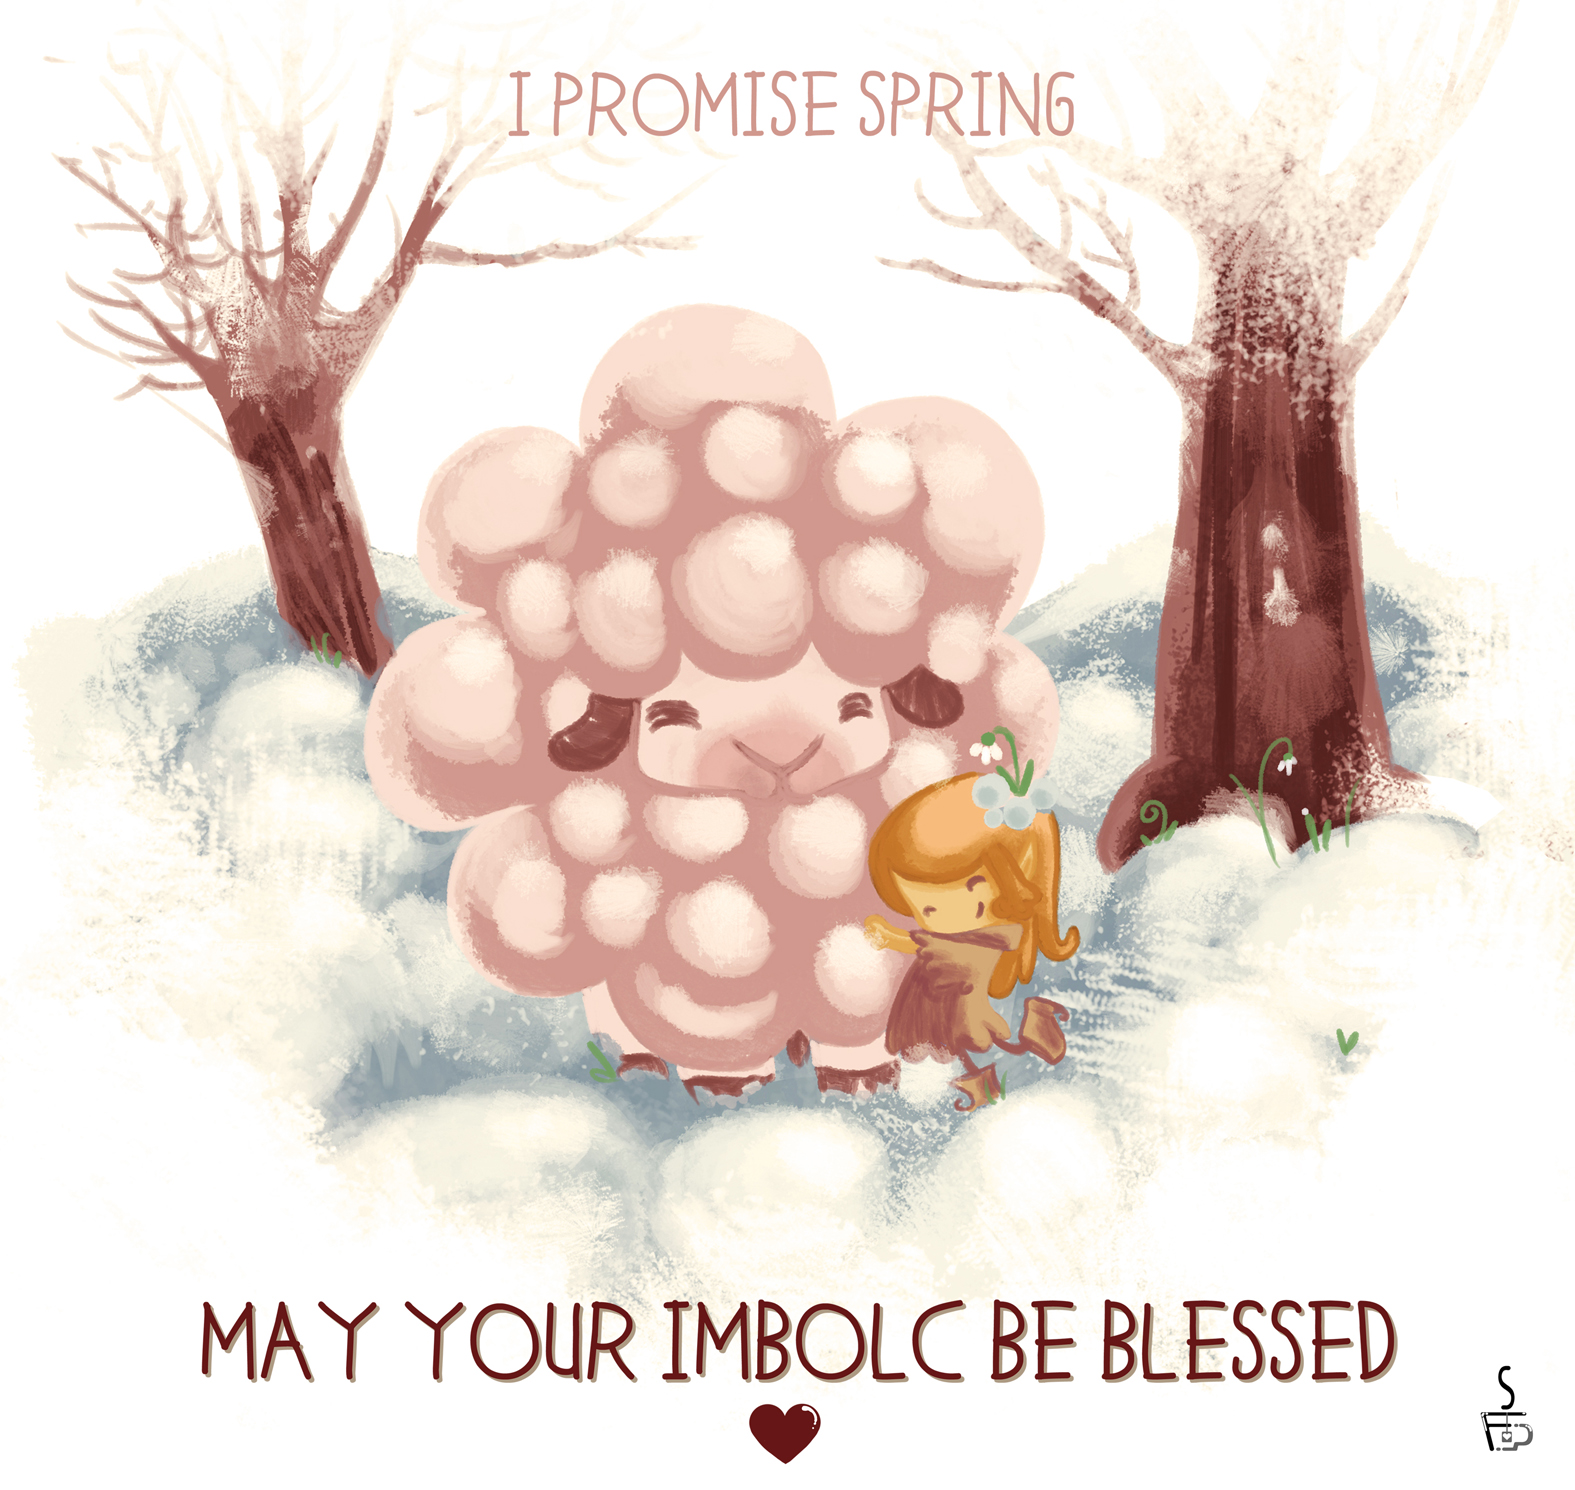 Imbolc Fb by serenaeffect